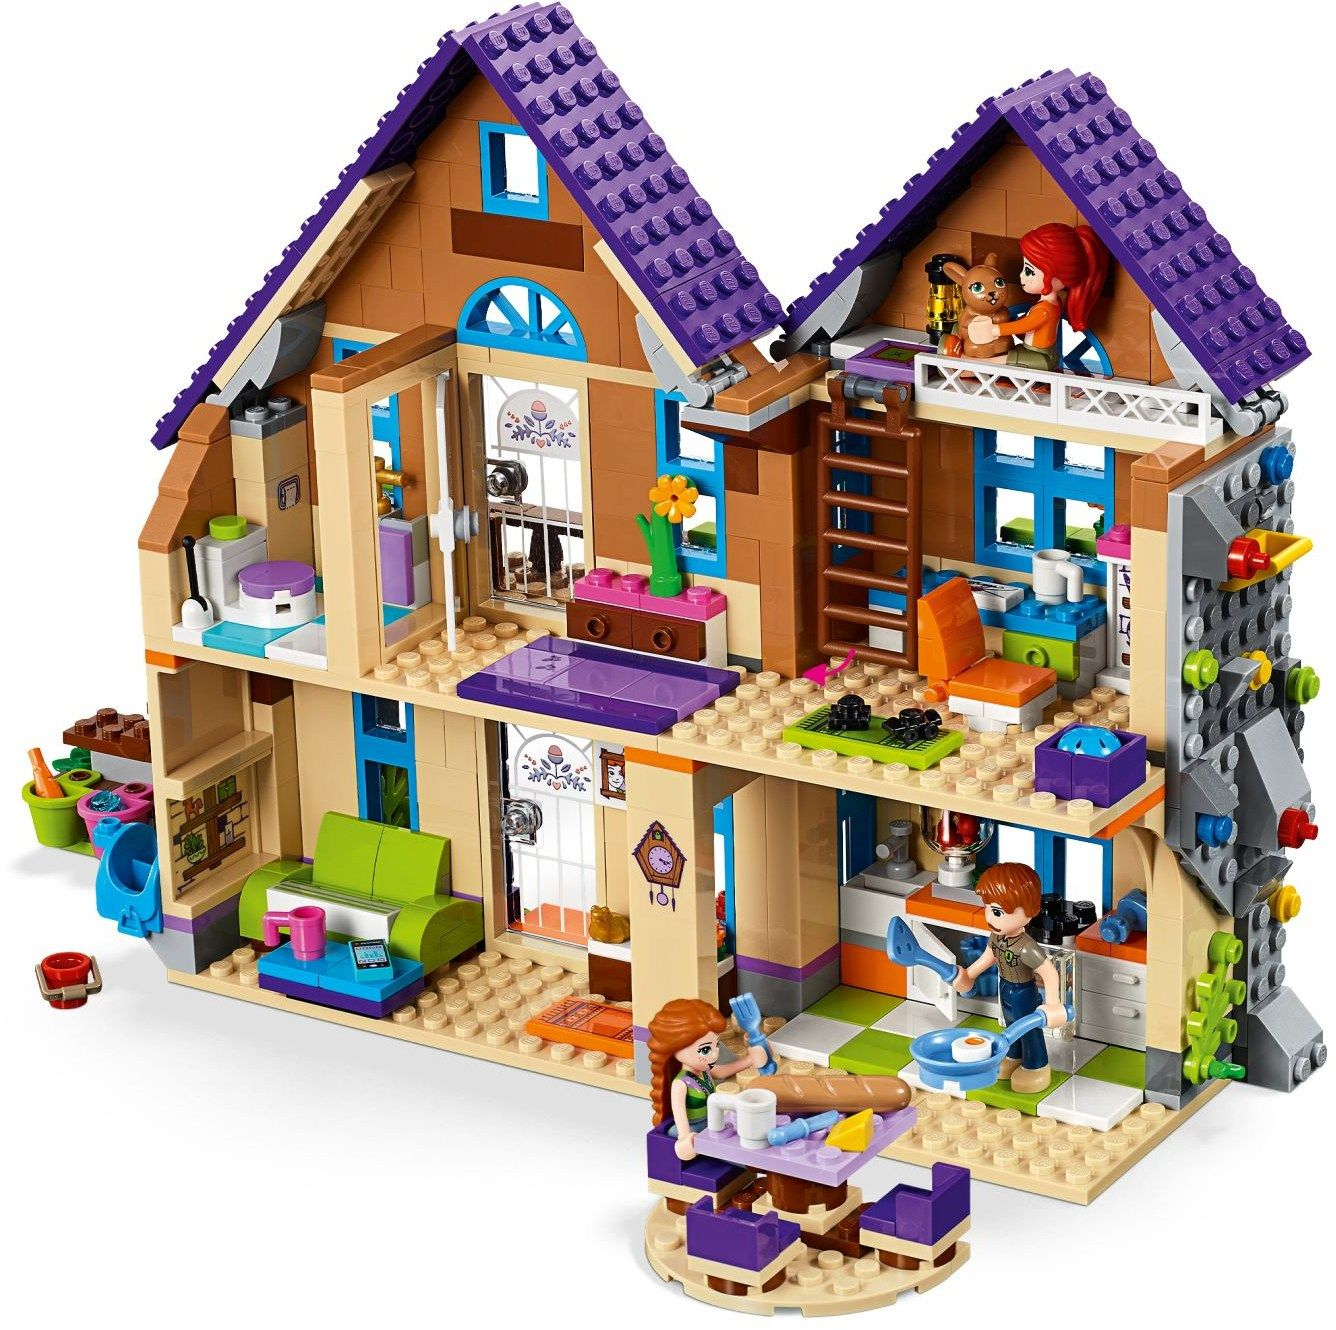 41369 1 Mia S House In 2020 Lego Friends Lego Friends Sets Lego House